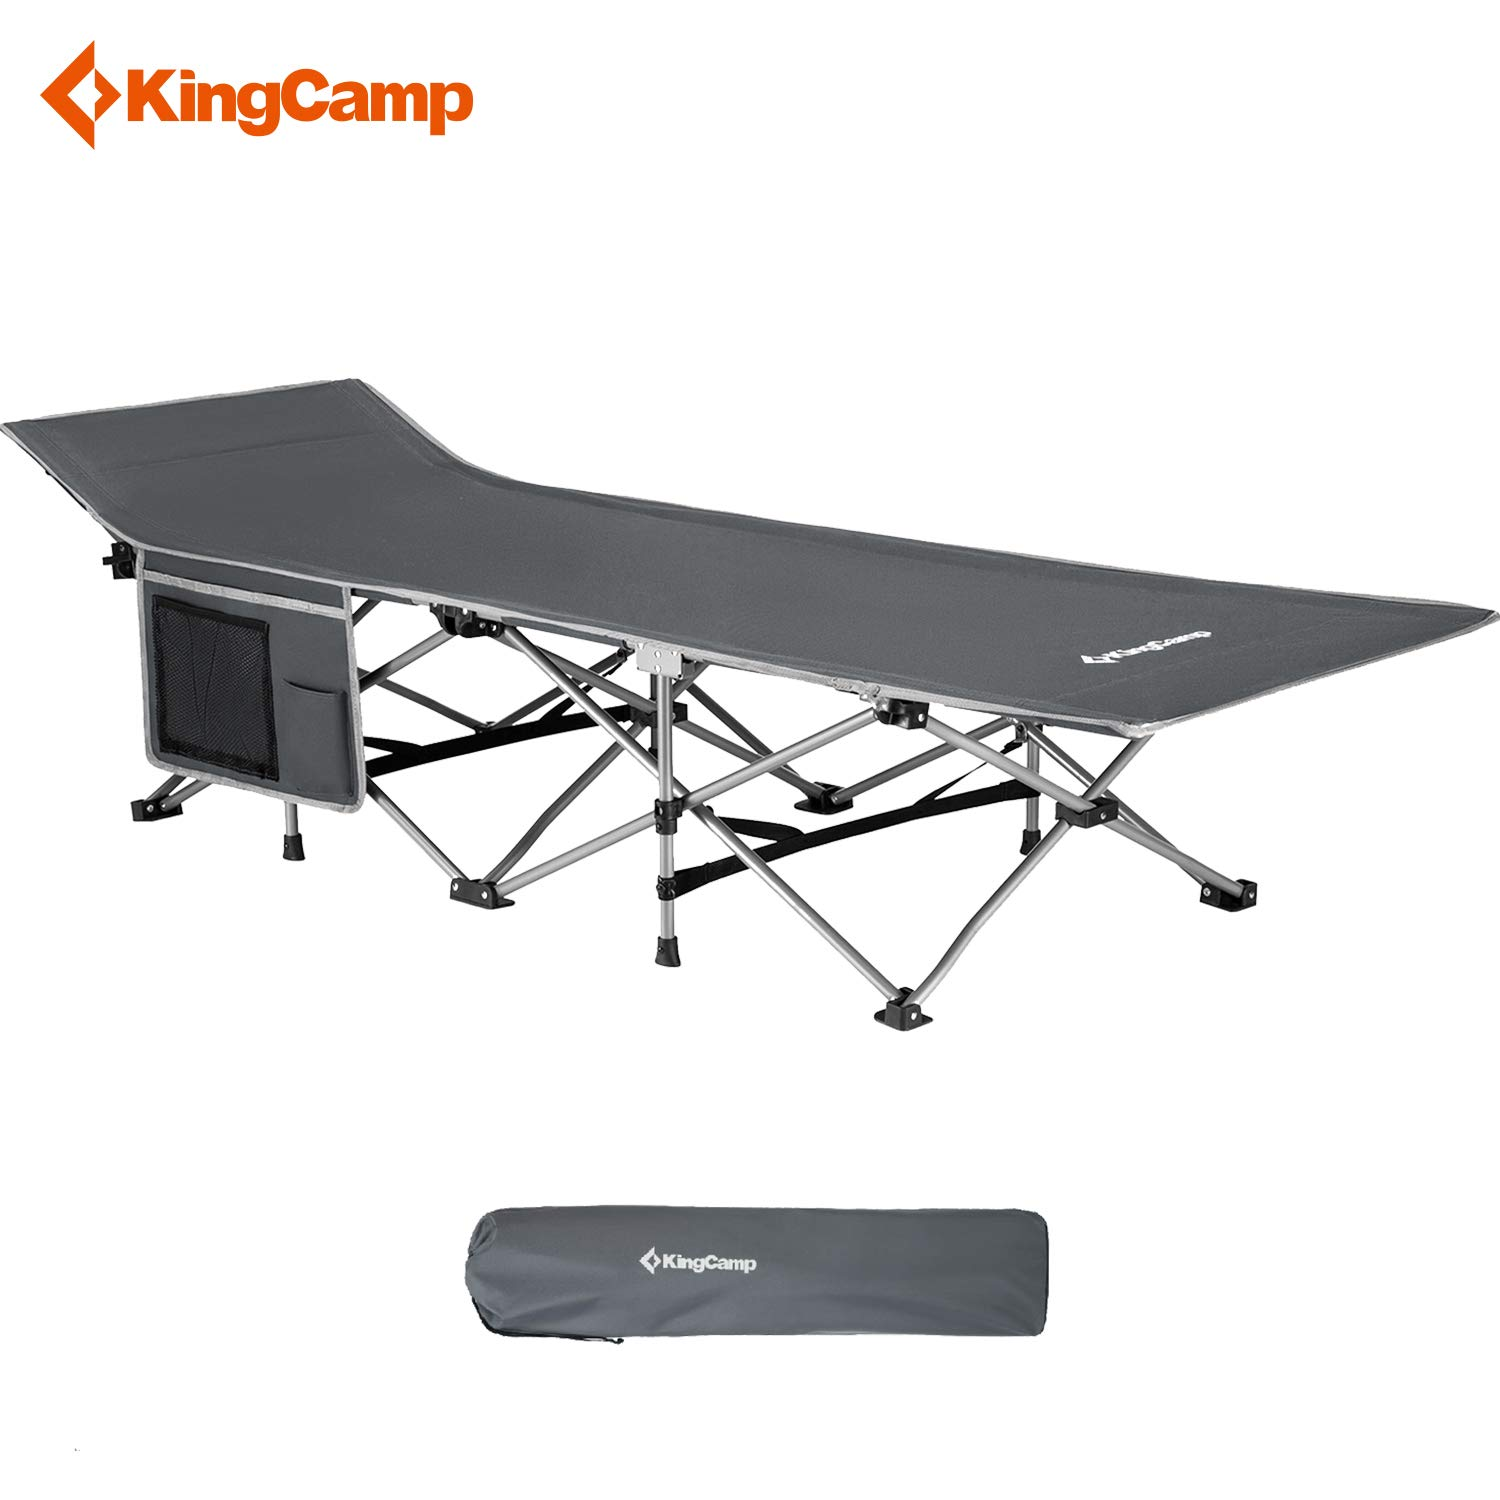 KingCamp Strong Stable Folding Camping Bed Cot with Carry Bag (Grey with Side Pocket) by KingCamp